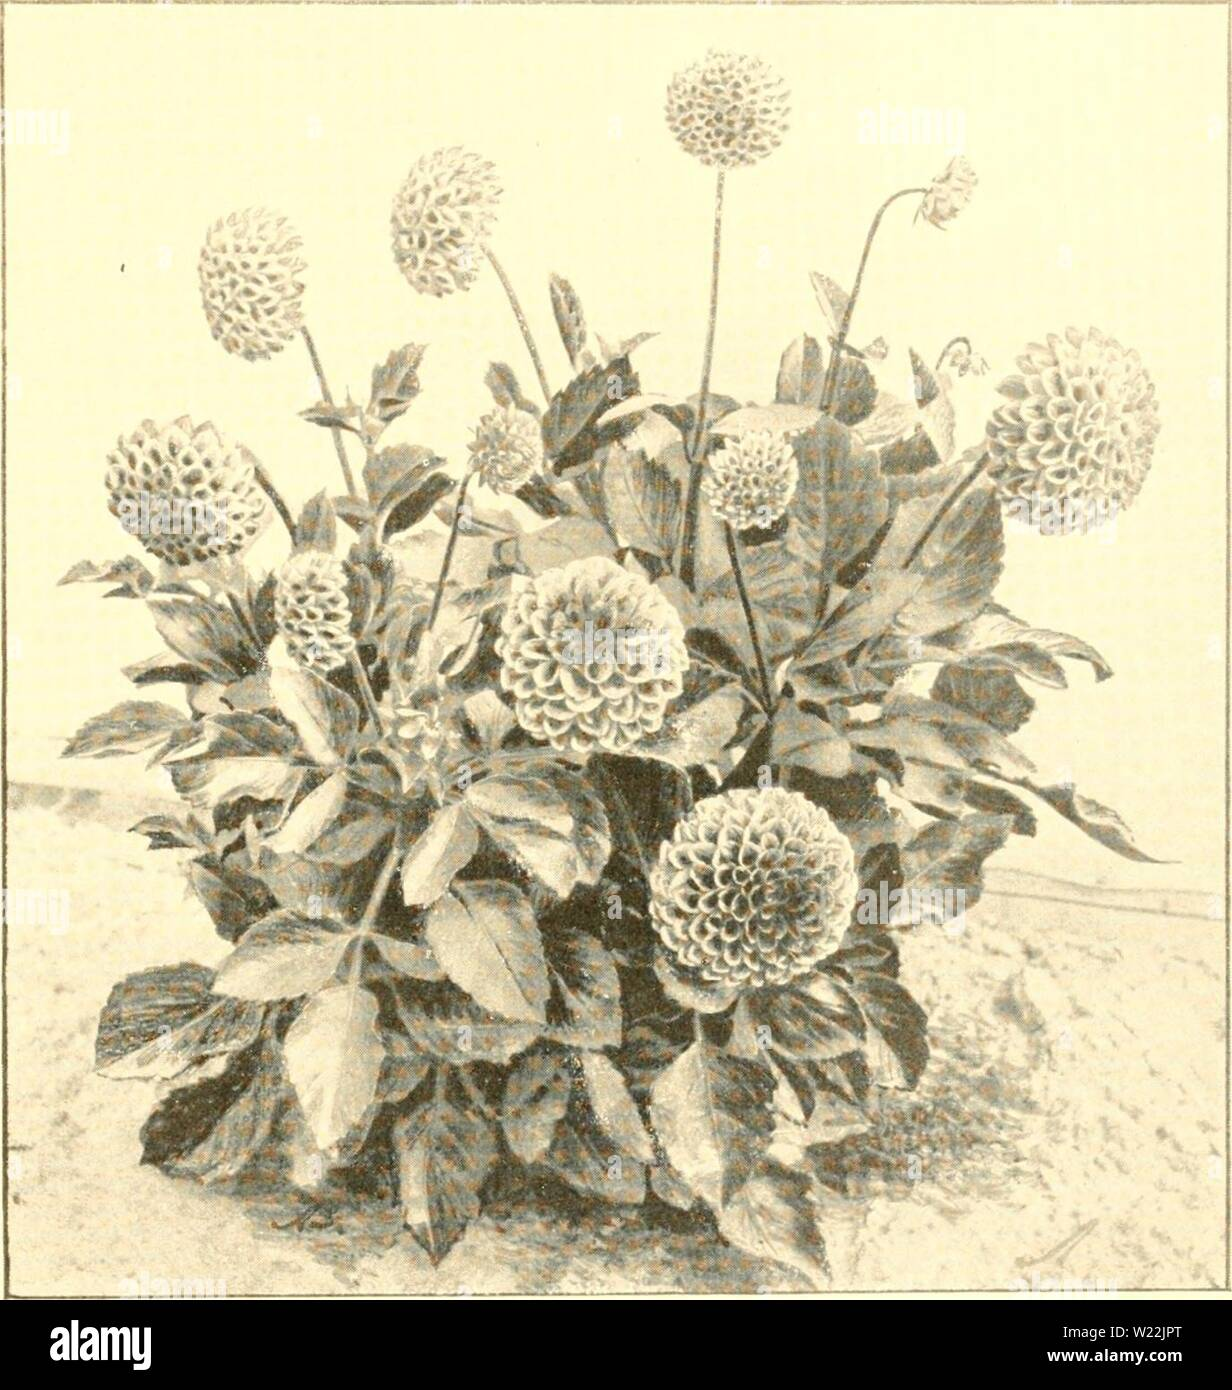 Archive image from page 20 of The Dahlia  a practical. The Dahlia : a practical treatise on its habits, characteristics, cultivation and history  dahliapracticalt00peac Year: 1896  Nkw DwAKi- Fancy Dahlia.—Rev. C. V. Bolton. I'laiUed Iiine 26tli. I'liotDi-raphed Sept 2Sth, 1895, after nine weeks continuous droutli. Sintle stem brandling system. - Stock Image